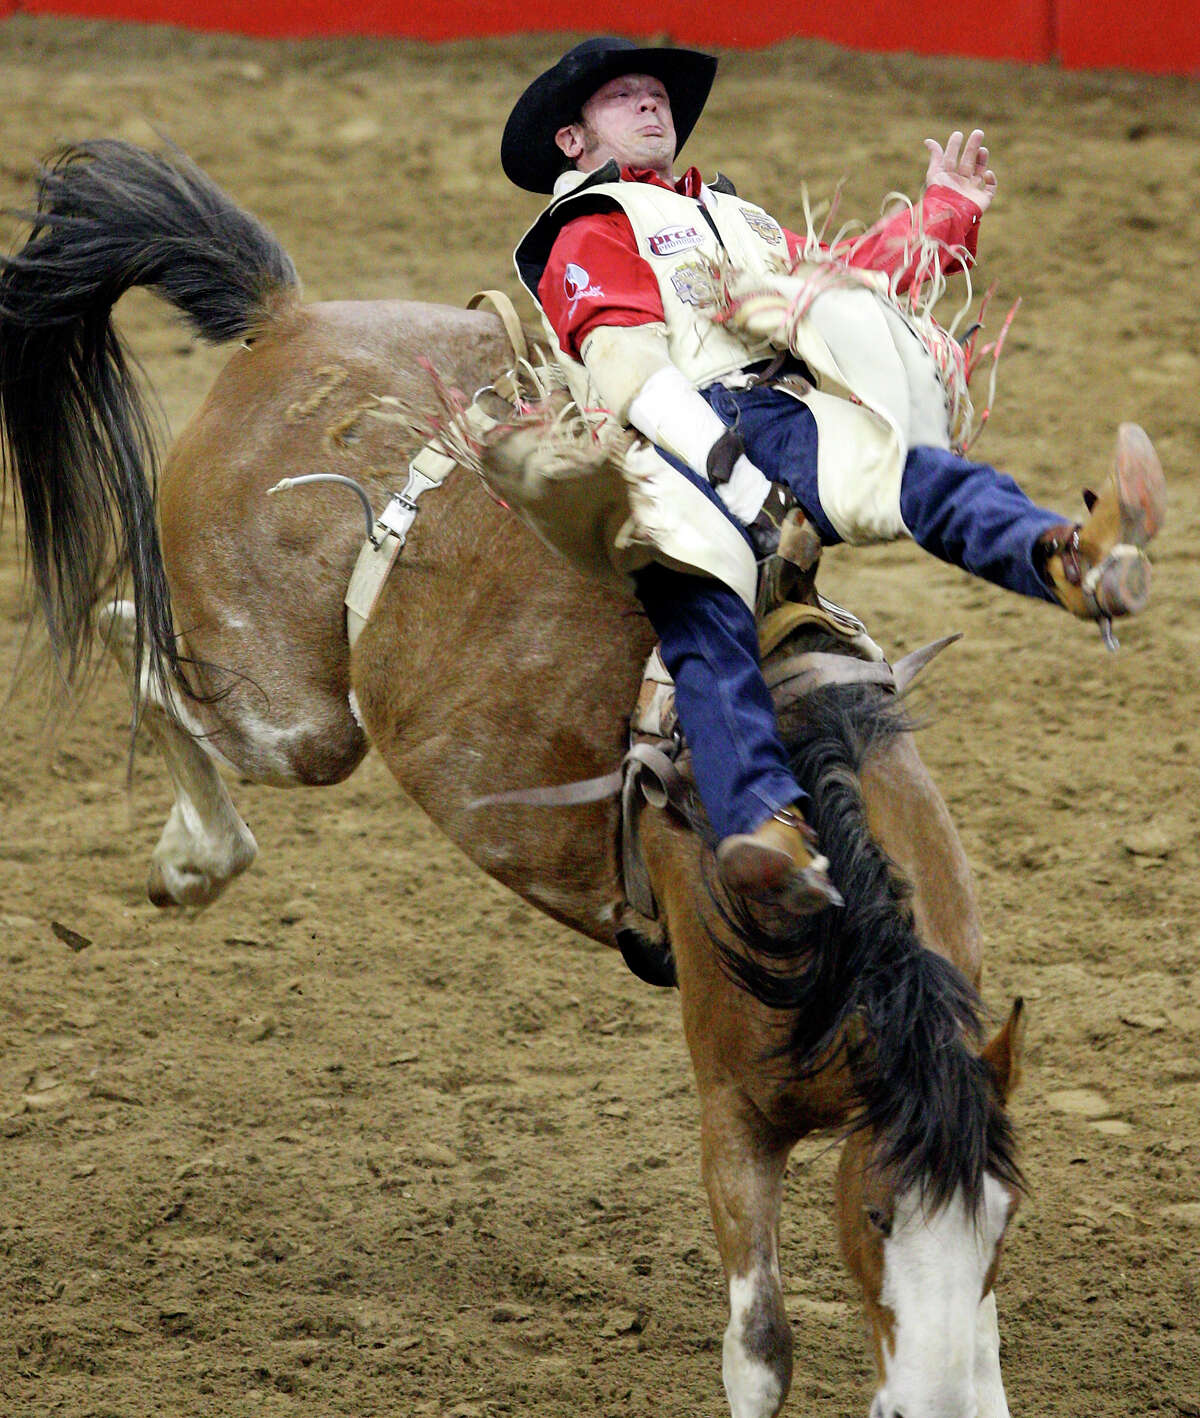 Chris Harris, from Itasca , TX , competes in the Bareback Riding event Monday Feb. 7, 2011 during the San Antonio Stock Show & Rodeo at the AT&T Center. Harris scored a 74 on the ride.